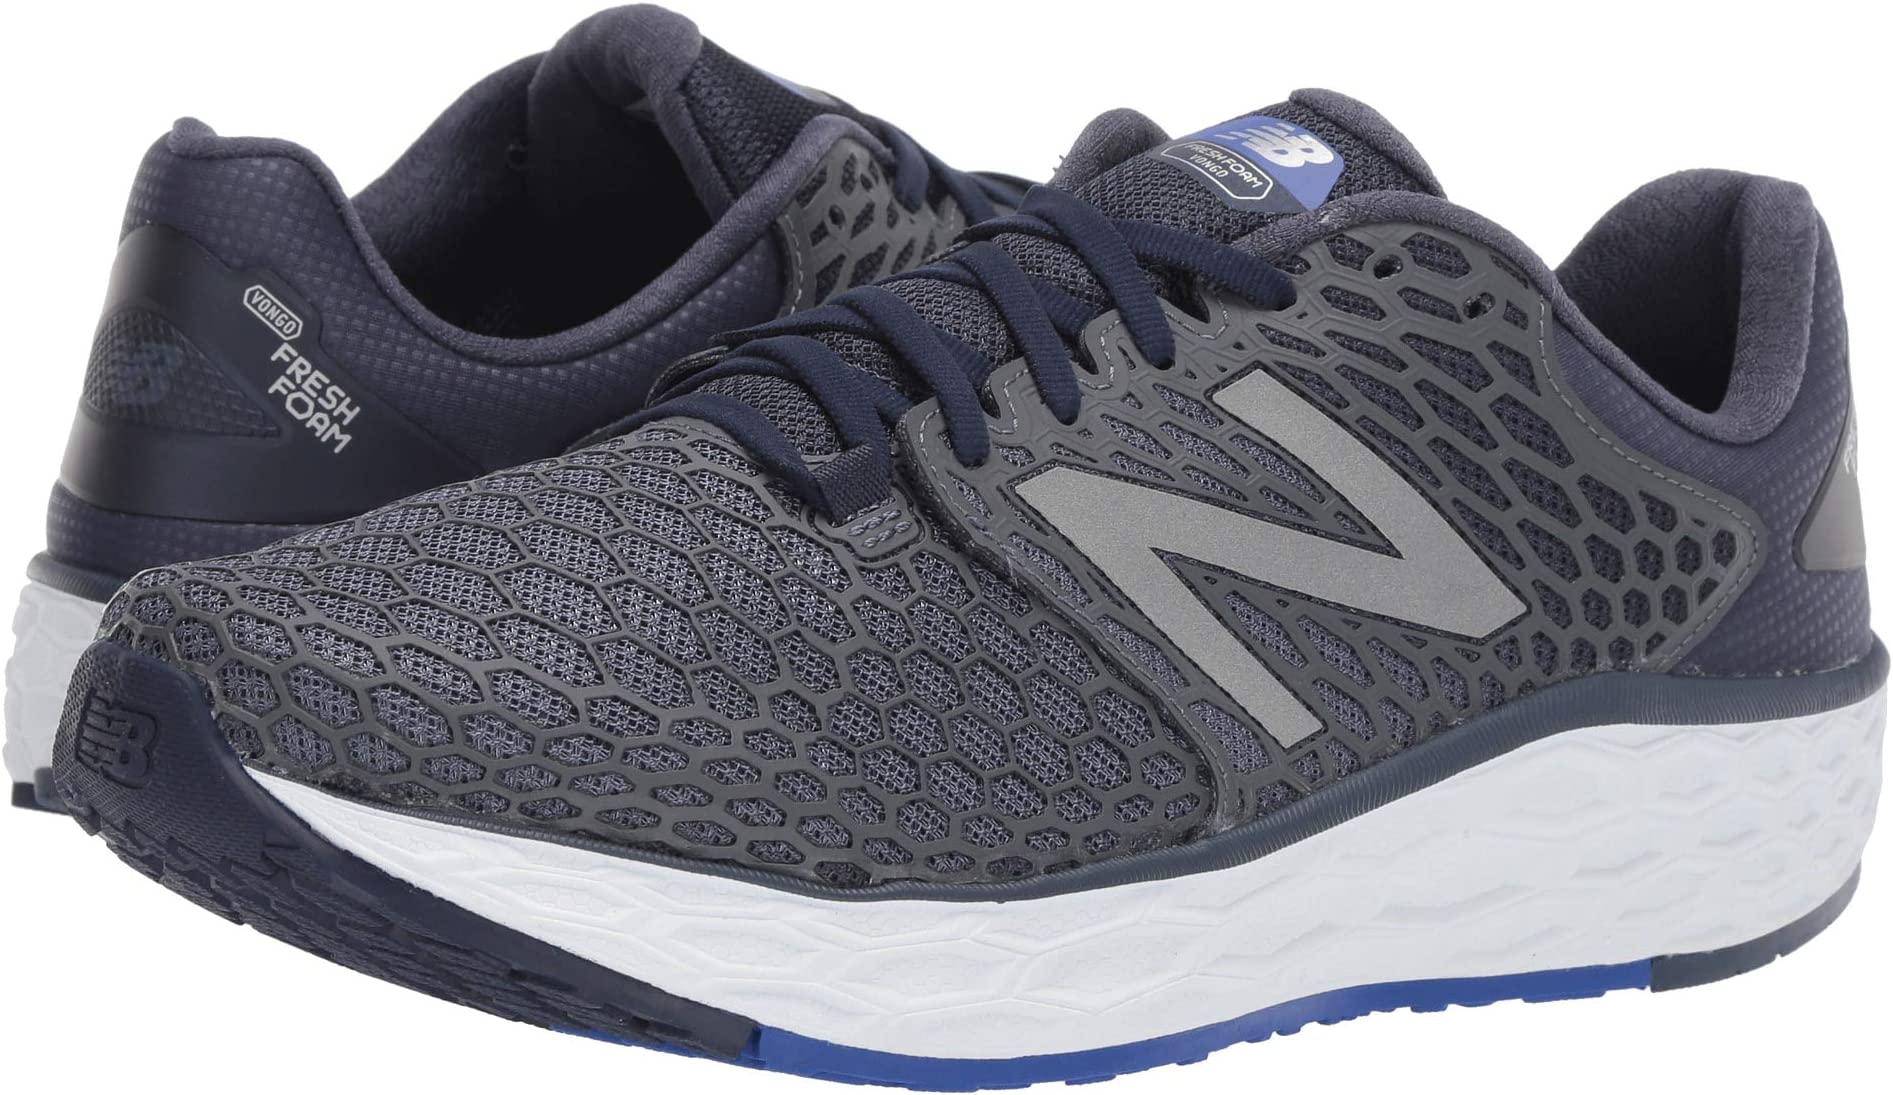 a71c2238245 New Balance Shoes